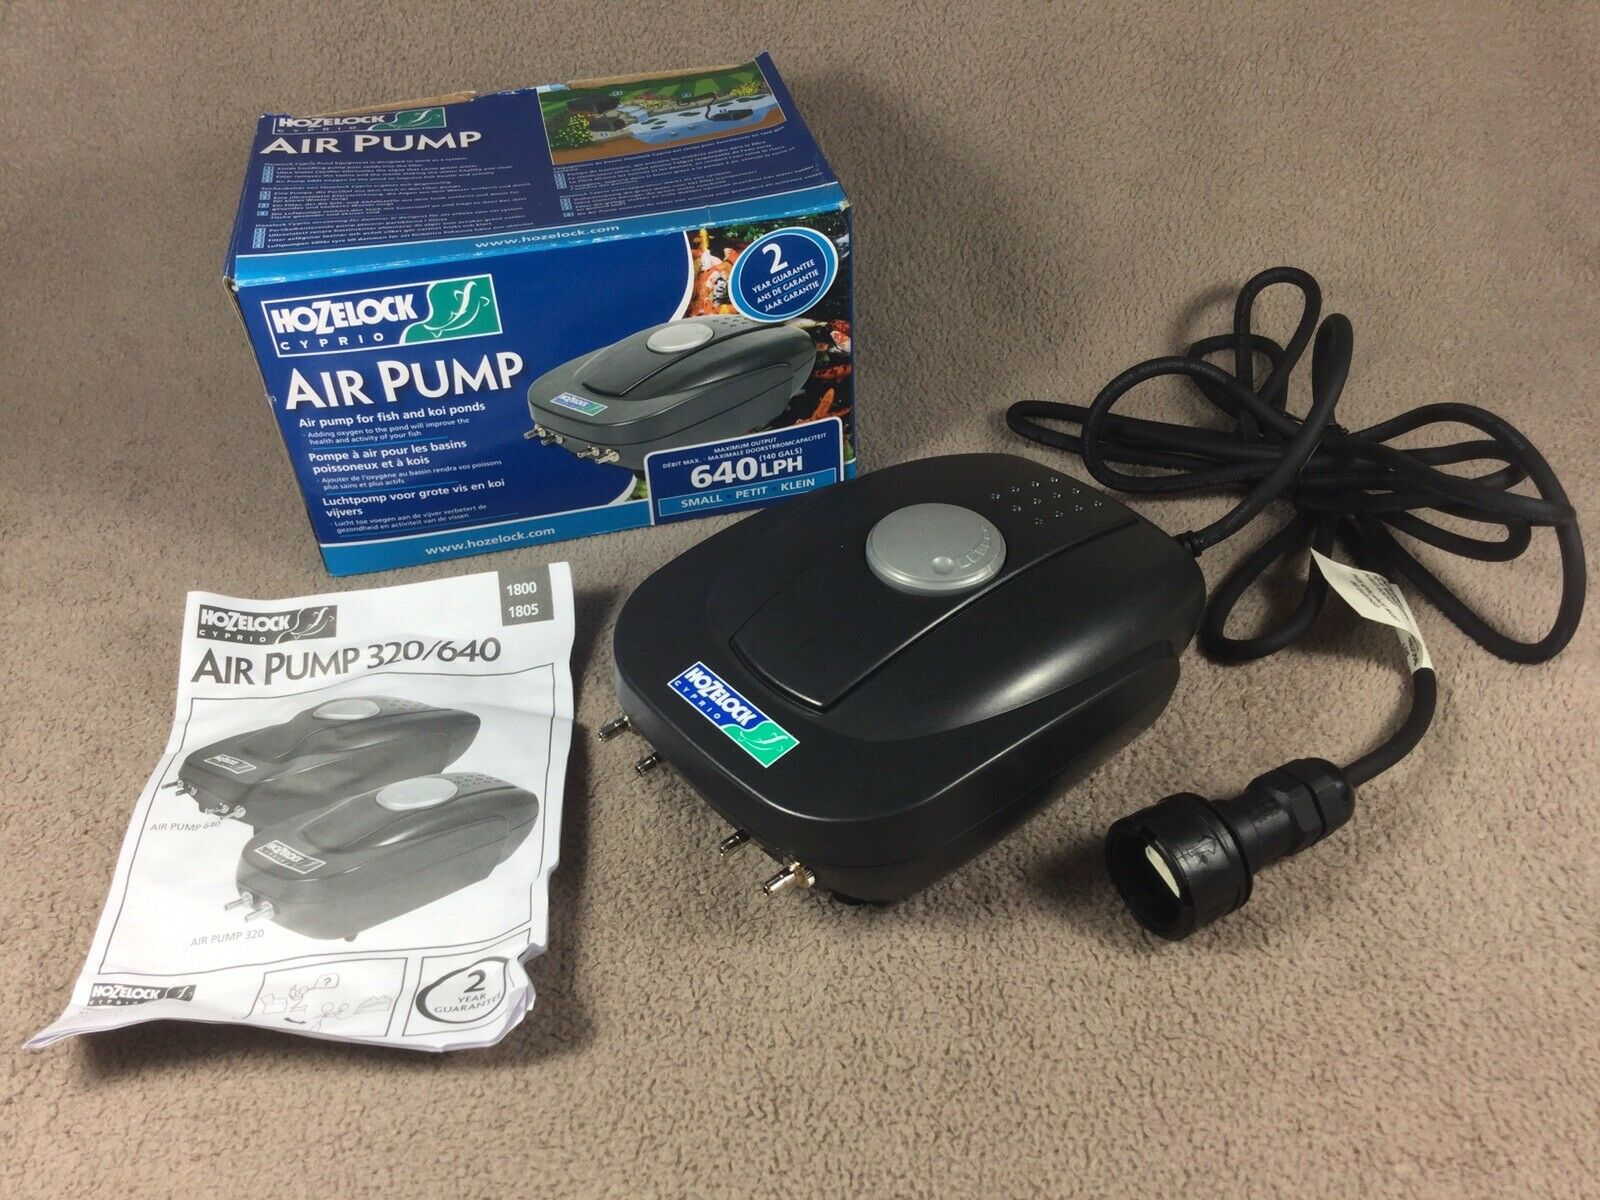 Hozelock 640 LPH Fish & Koi Pond Air Pump - Boxed With Instructions